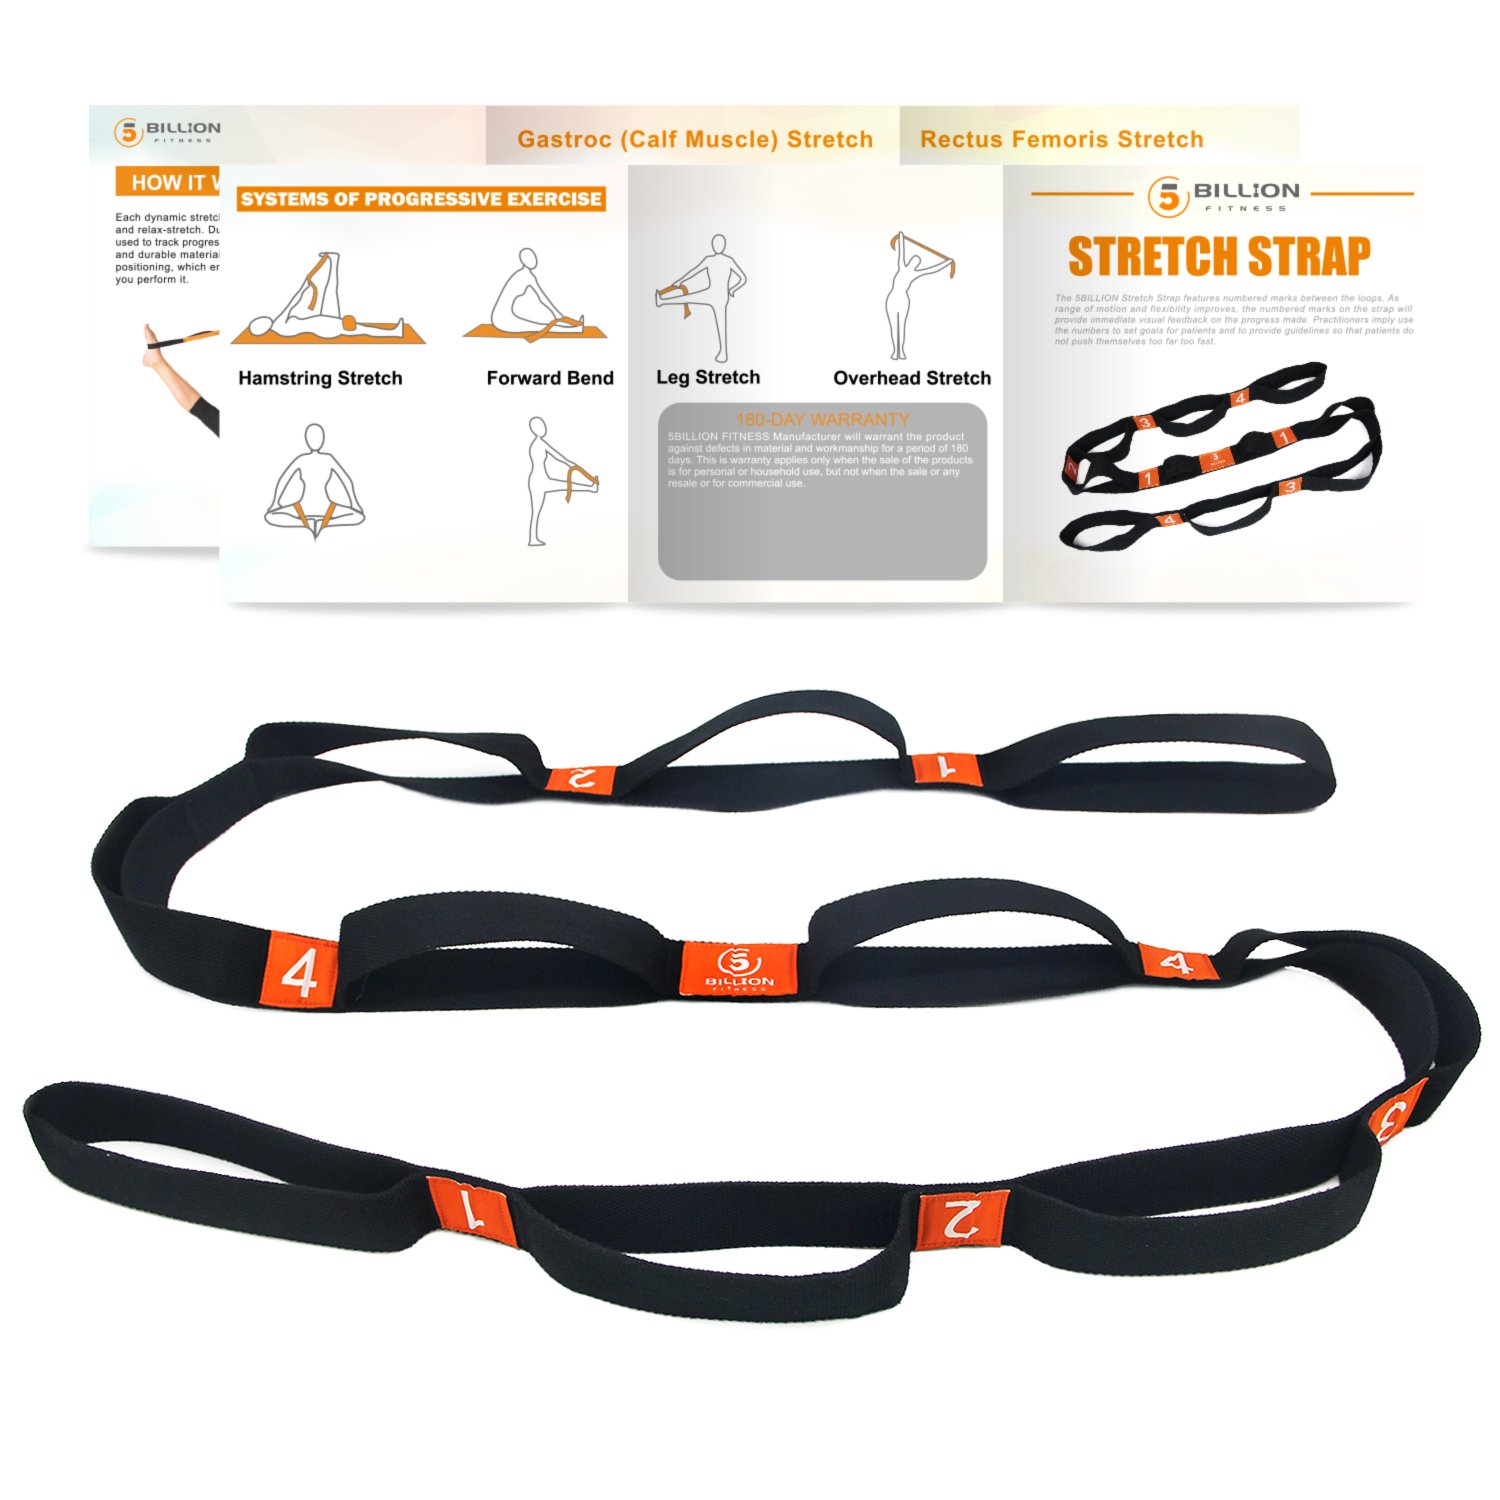 5BILLION Cotton Yoga Stretching Exercise Strap Band with Multiple Grip Loops for Hot Yoga, Physical Therapy, Greater Flexibility & Fitness Workout, 1.6'' W x 6.7' L